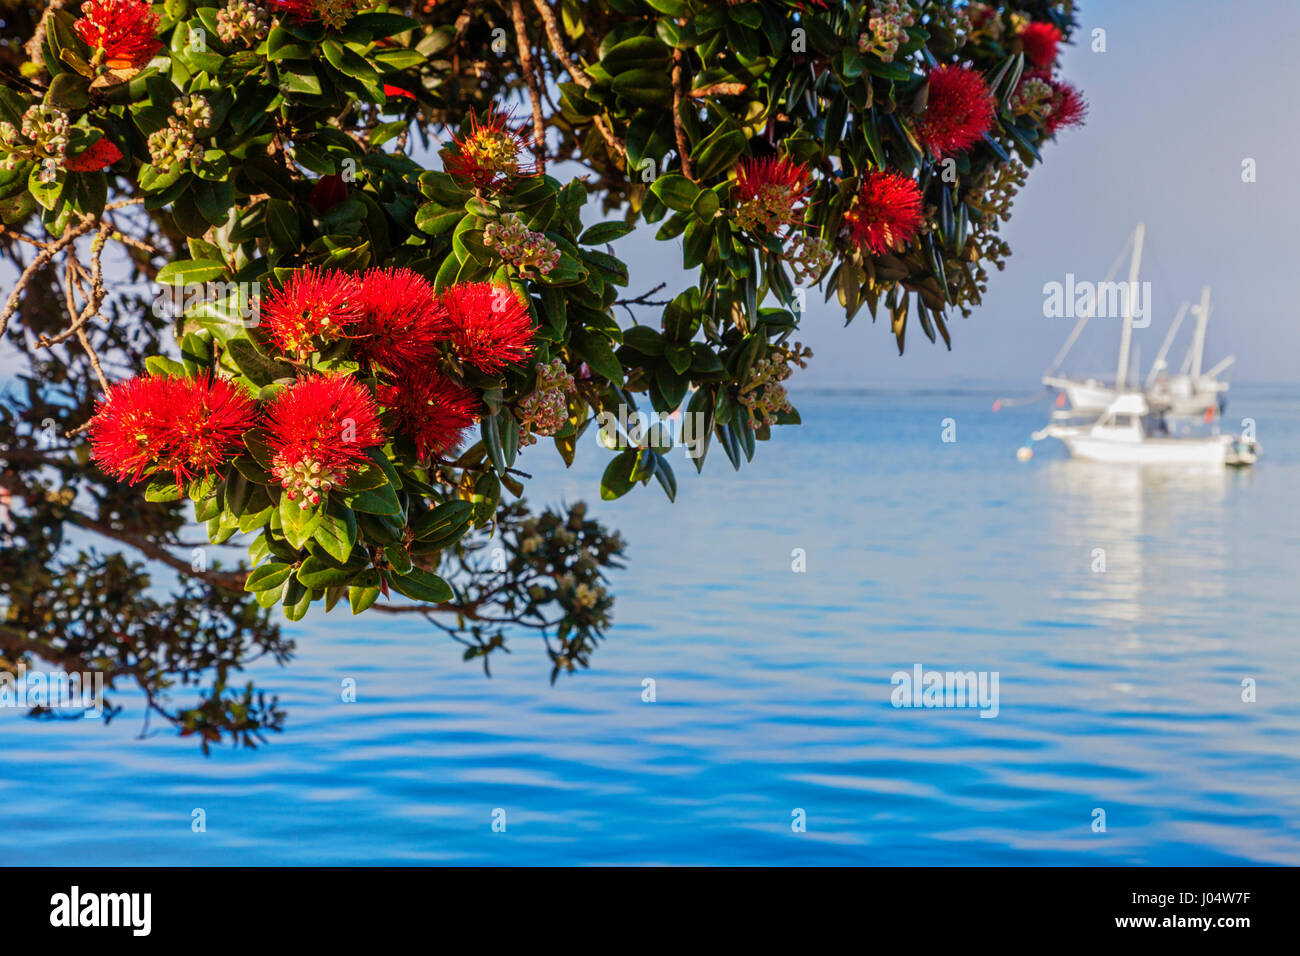 Known as the New Zealand Christmas Tree because it usually flowers at Christmas, Pohutukawa at Russell, Bay of Islands, - Stock Image